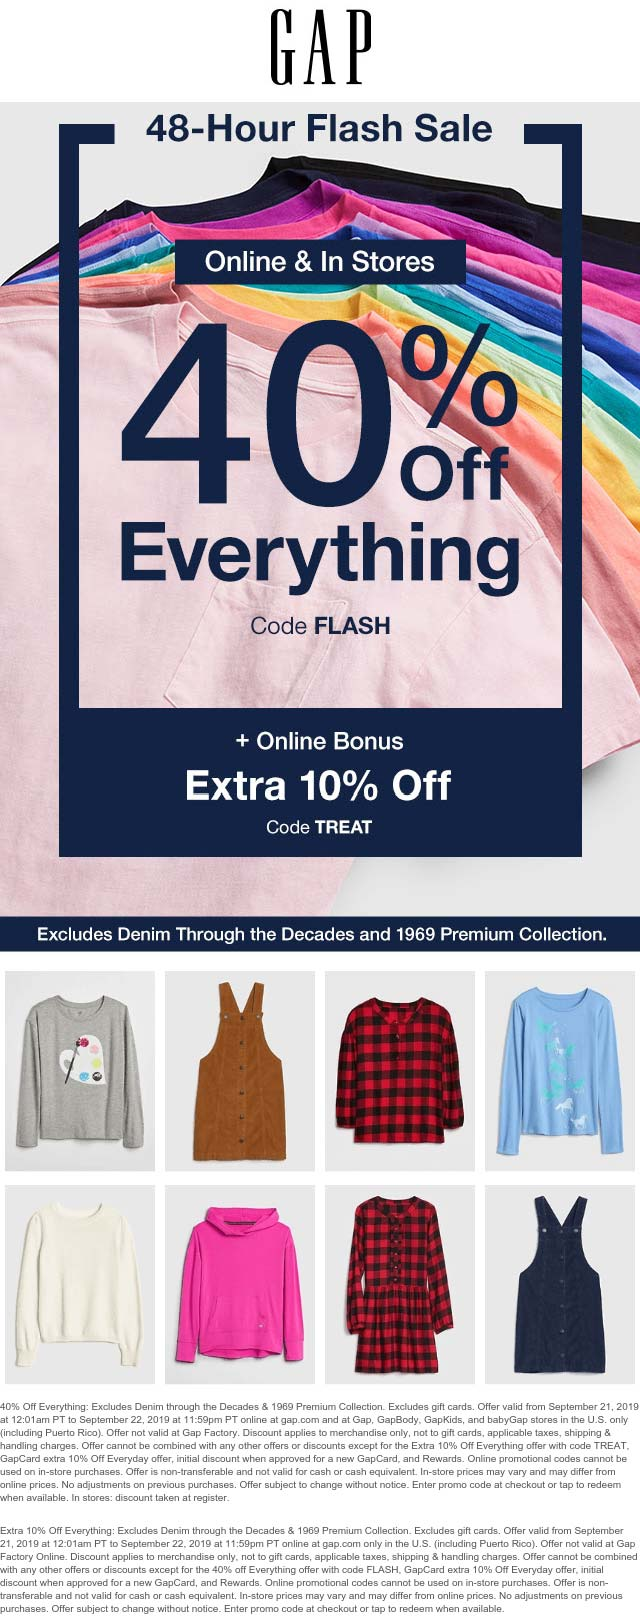 Gap Coupon January 2020 40% off everything today at Gap, or 50% online via promo code FLASH & TREAT